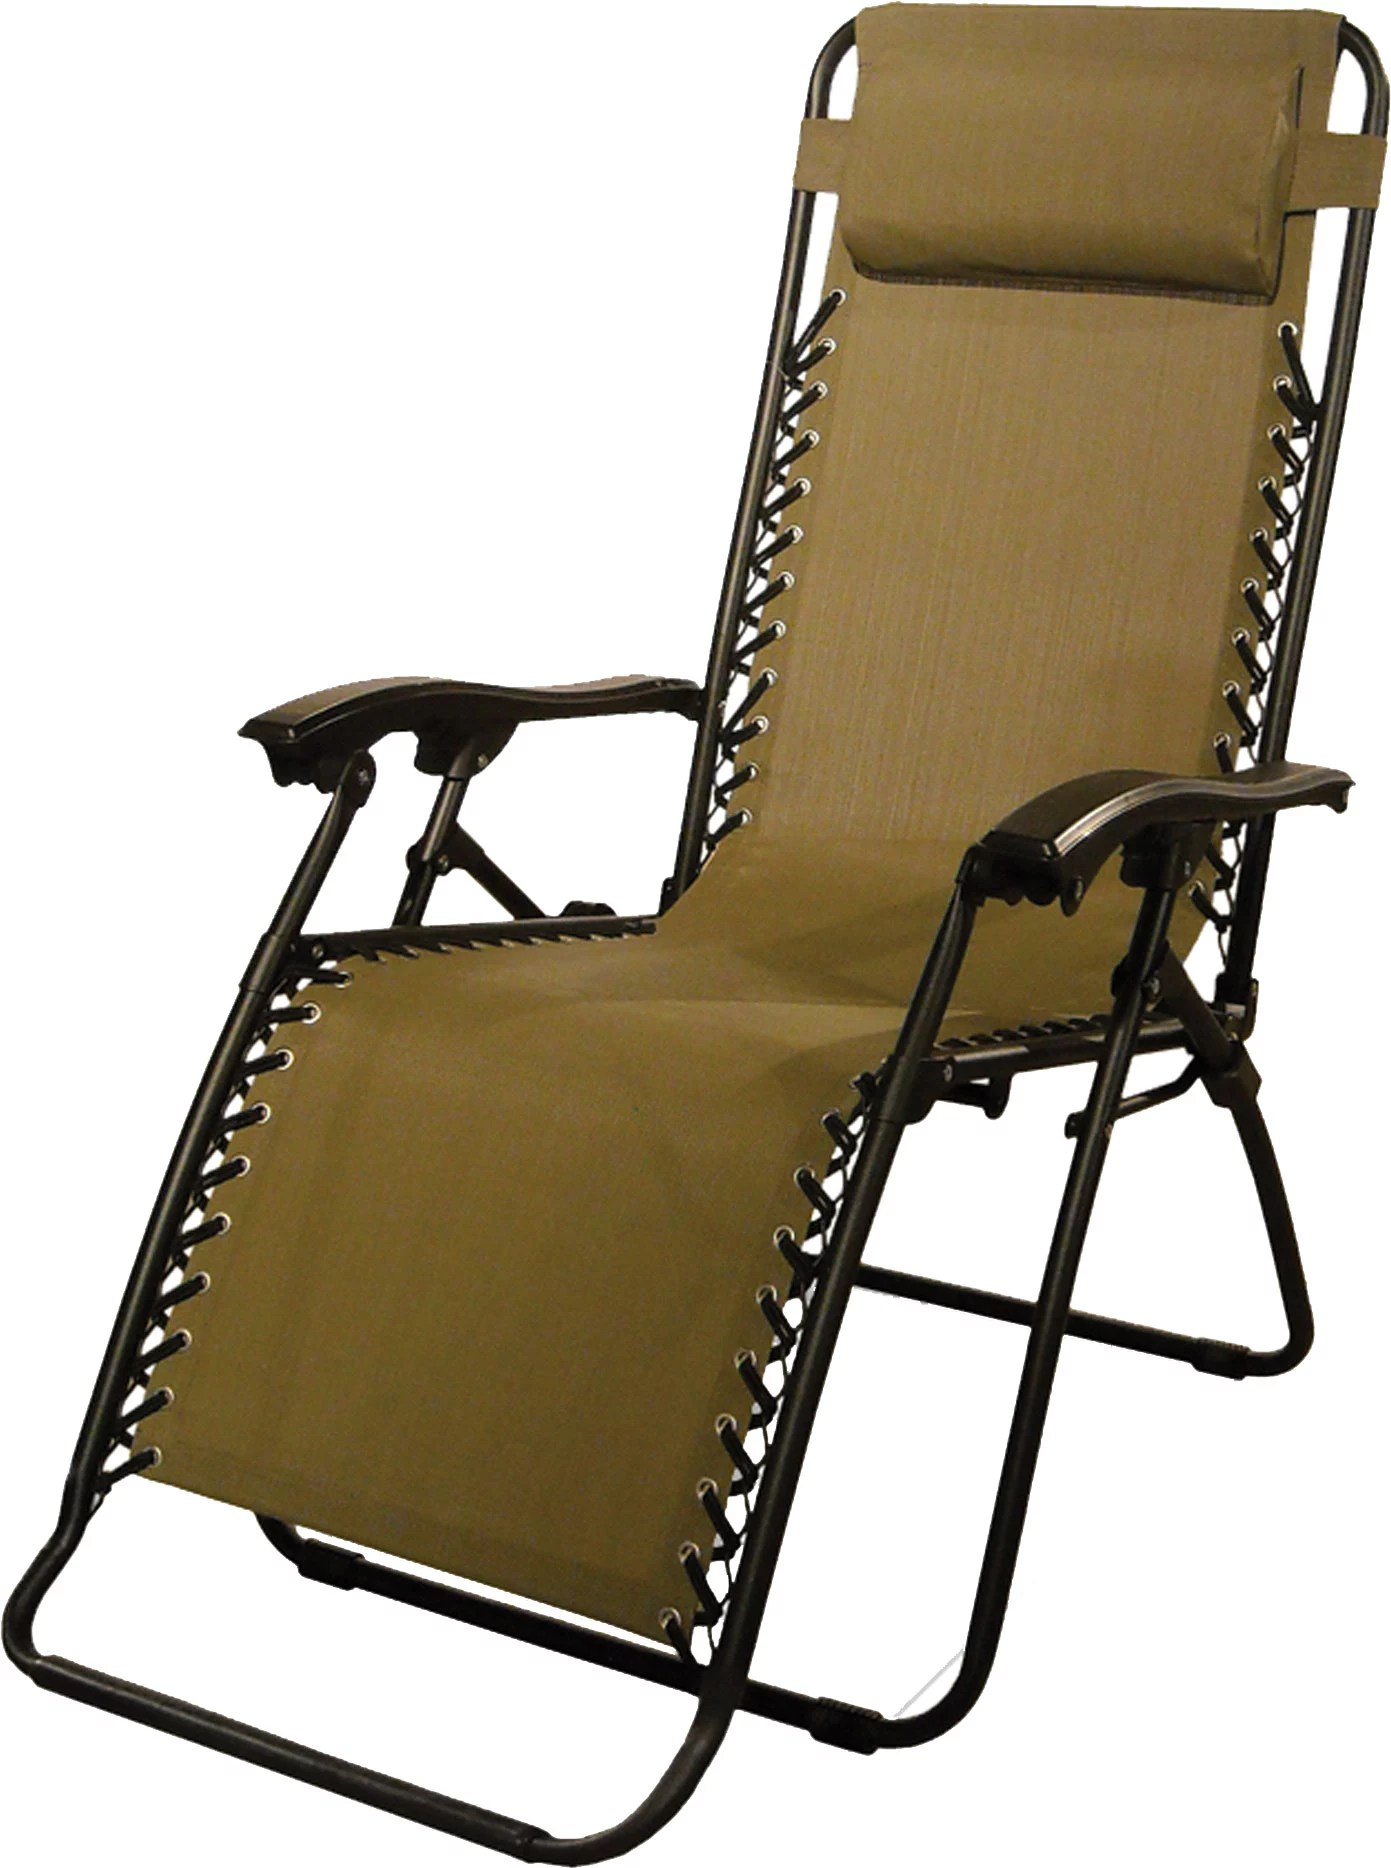 zero gravity chair clearance joel lounge chairs best price guarantee at dick s product image caravan infinity